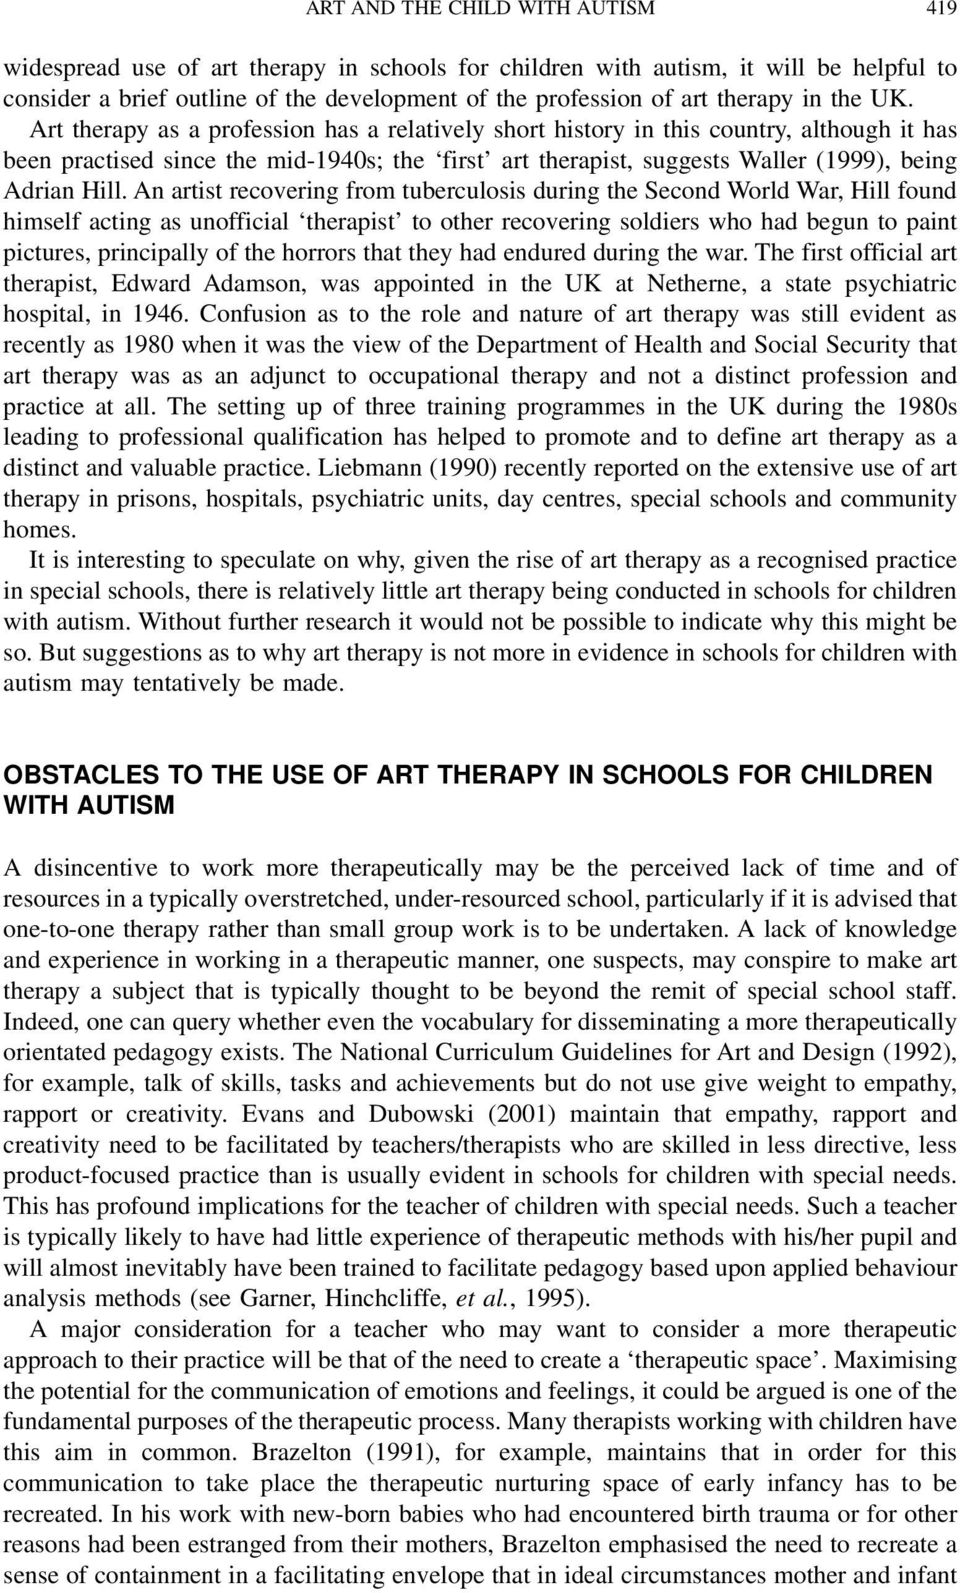 Art therapy as a profession has a relatively short history in this country, although it has been practised since the mid-1940s; the first art therapist, suggests Waller (1999), being Adrian Hill.